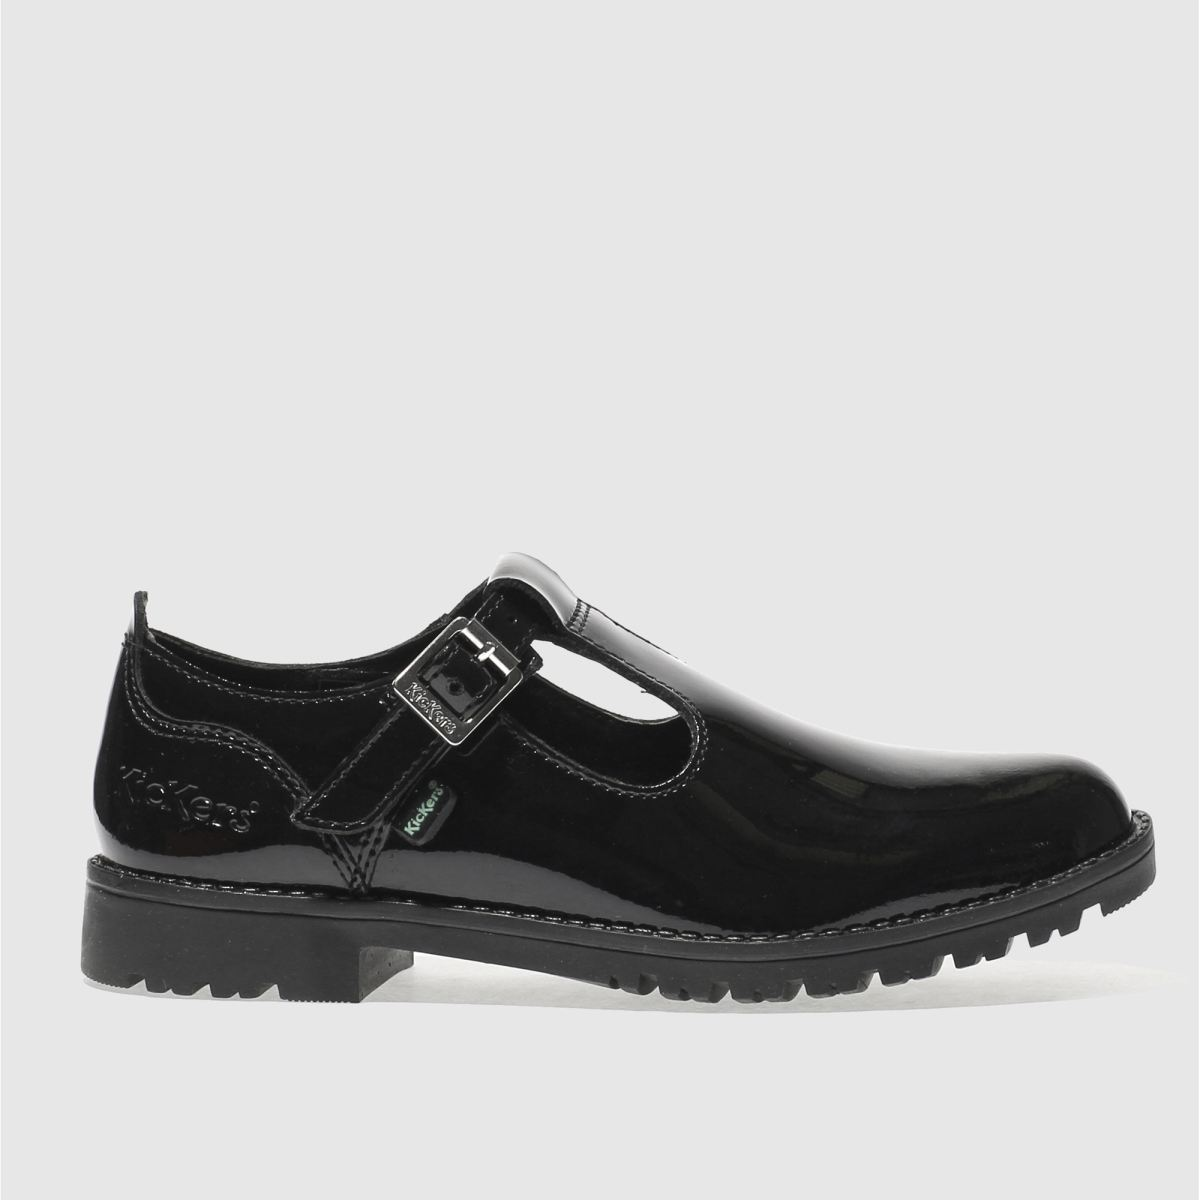 kickers black kick lachly Girls Junior Shoes